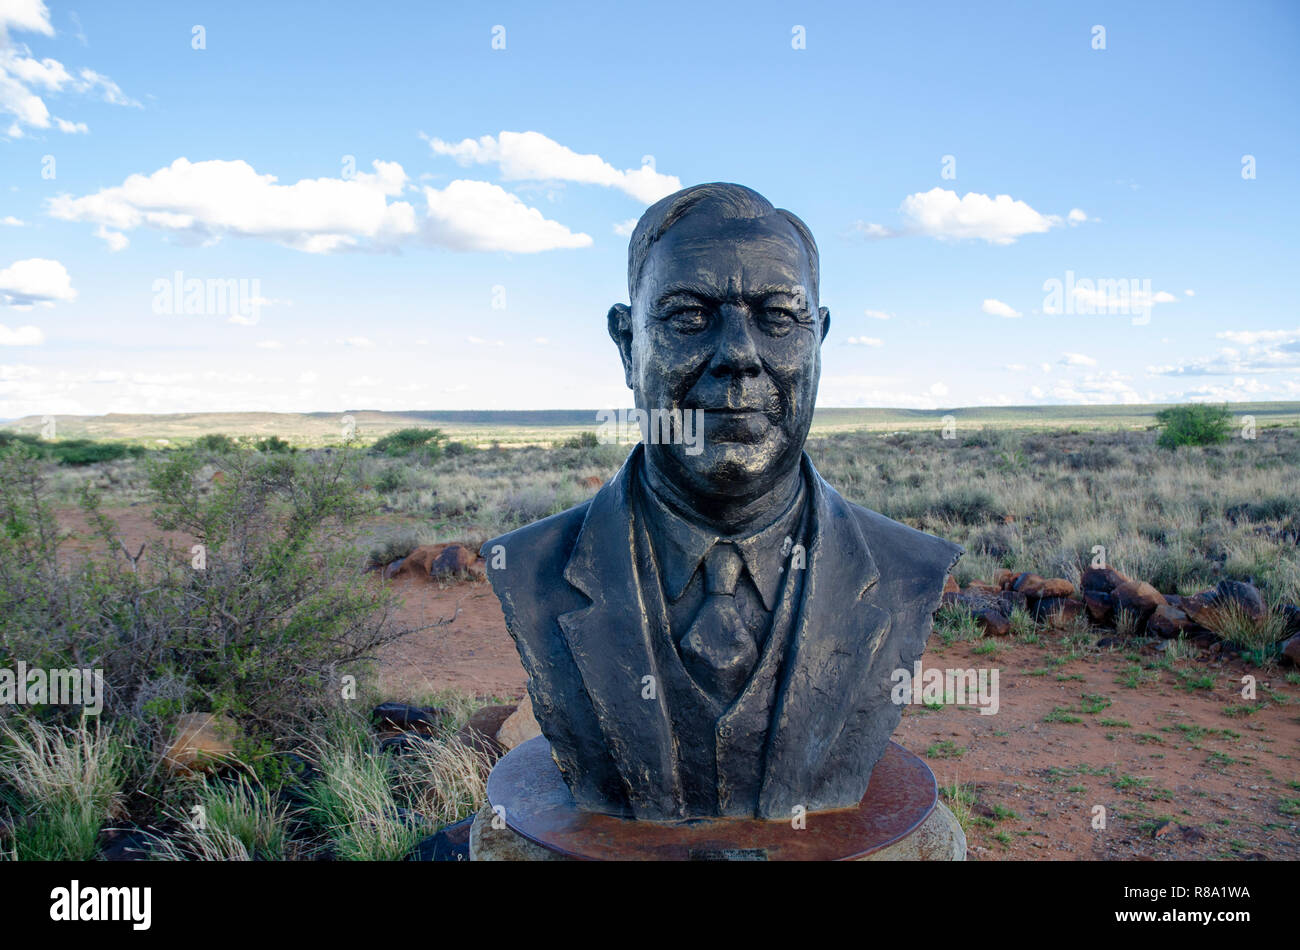 The bust of H.F. Verwoerd, the mastermind of Apartheid, stands on a hill in Orania, Northern Cape, Friday, December 12, 2013. As South Africa has been ridding itself of its painful past by removing the busts from various public places around the country, Orania has been collecting them, and built concrete pedestals to put them on. Orania is an Afrikaner (only) town located along the Orange River in the Karoo. Photo: Eva-Lotta Jansson - Stock Image